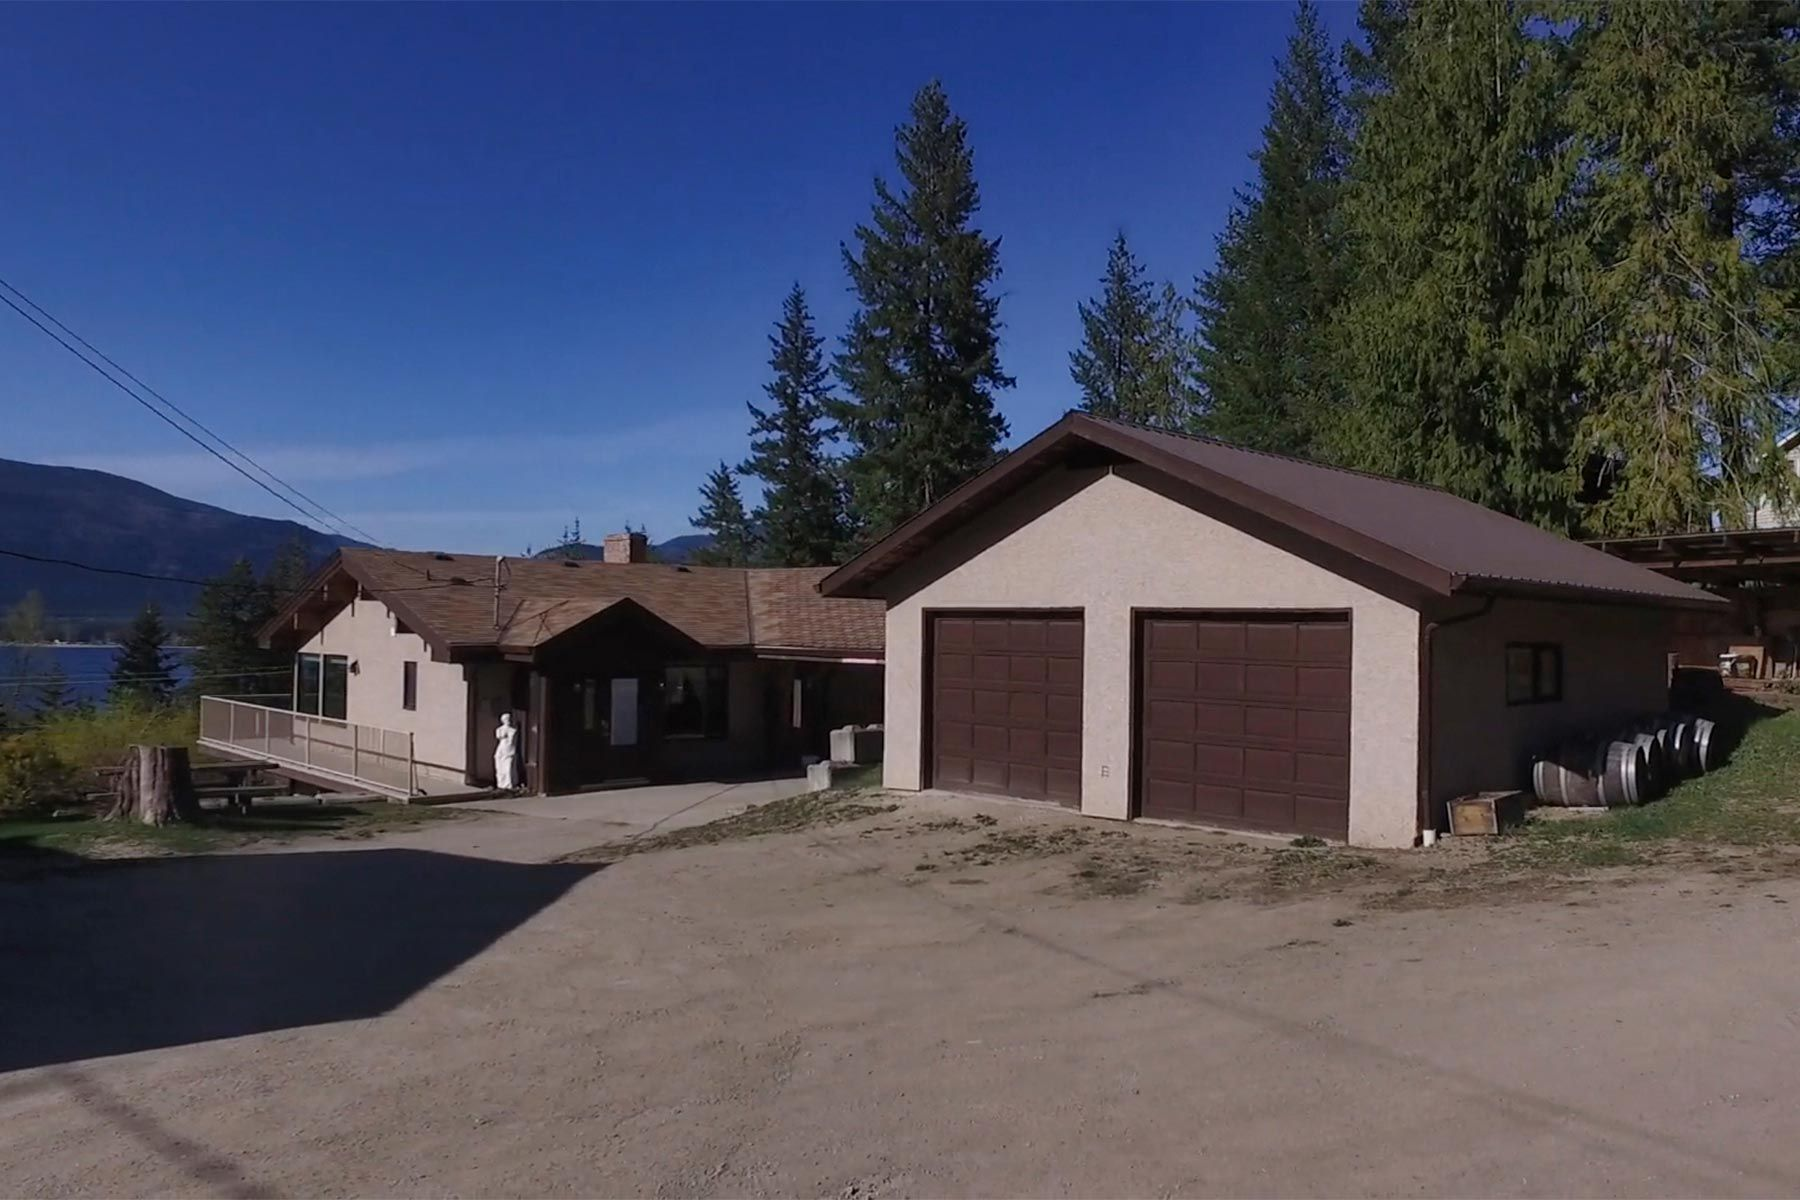 Photo 10: Photos: 1350 Trans Canada Highway in Sorrento: House for sale : MLS®# 10225818